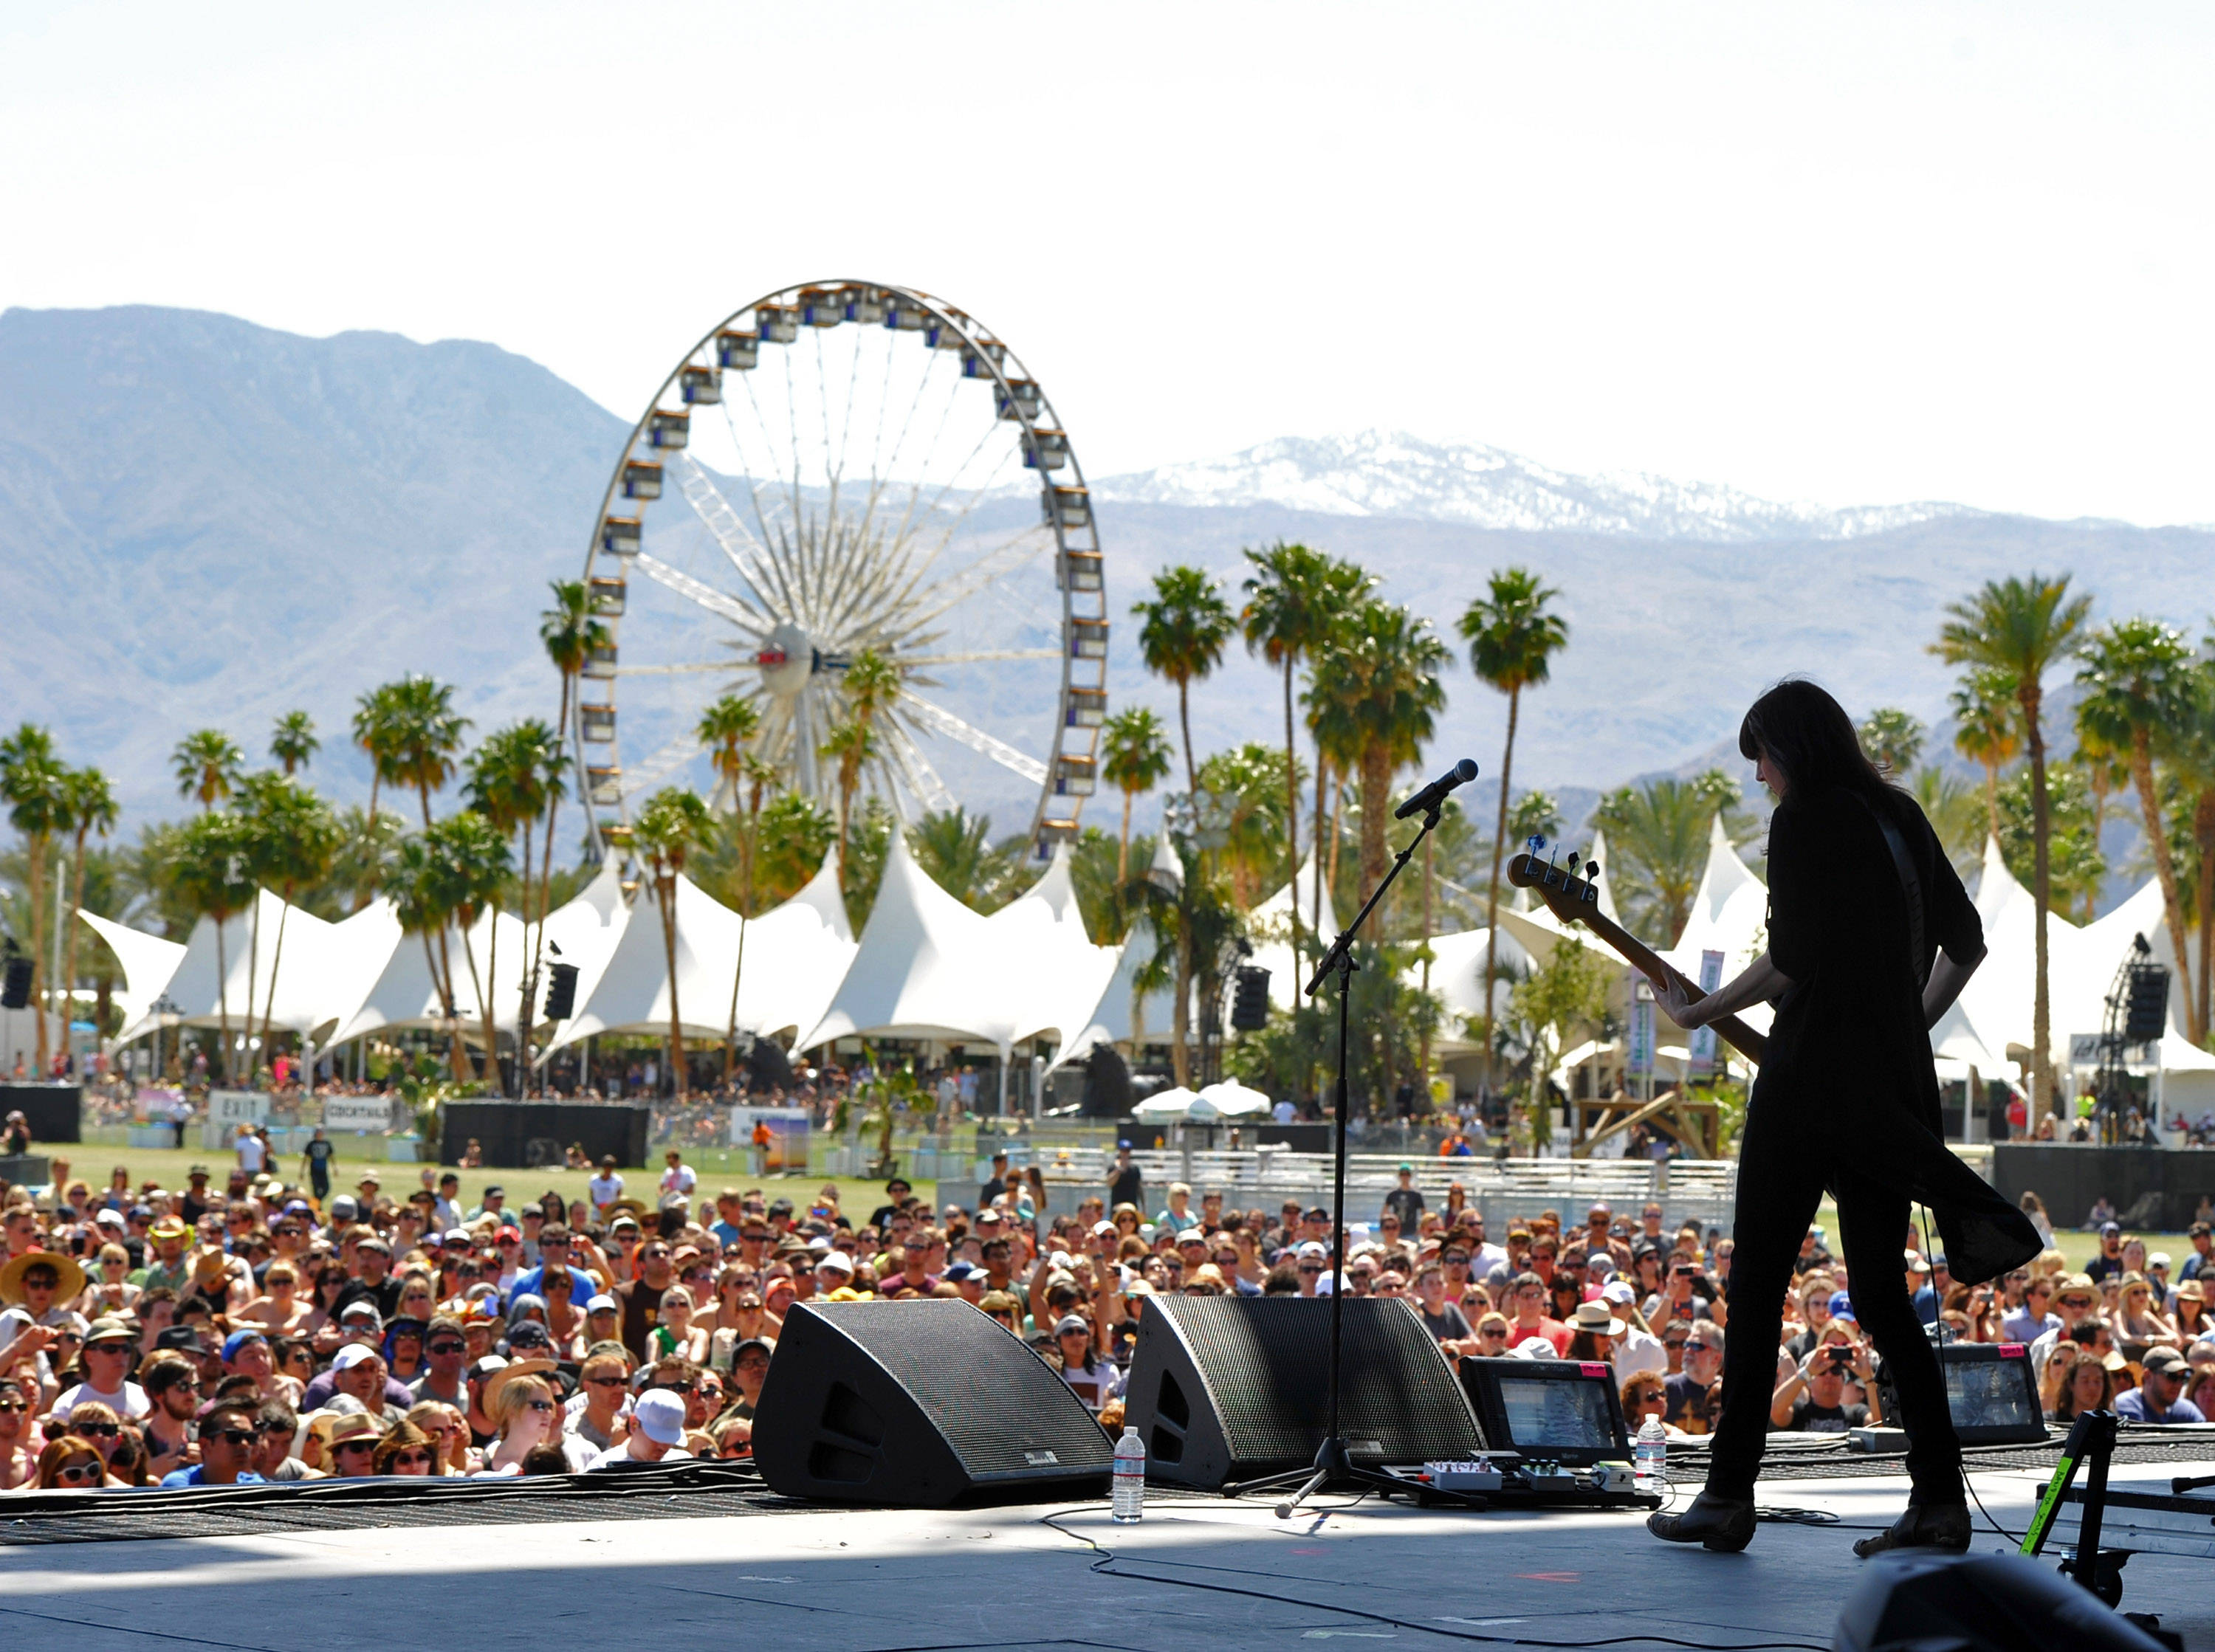 Coachella (/ k oʊ ˈ tʃ ɛ l ə /, / k oʊ. ə ˈ tʃ ɛ l ə /) is a city in Riverside County, California; it is the easternmost city in the region collectively known as the Coachella Valley (or the Palm Springs area). It is located 28 miles (45 km) east of Palm Springs, 80 miles ( km) east of Riverside, and miles ( km) east of Los Angeles.. Known as the